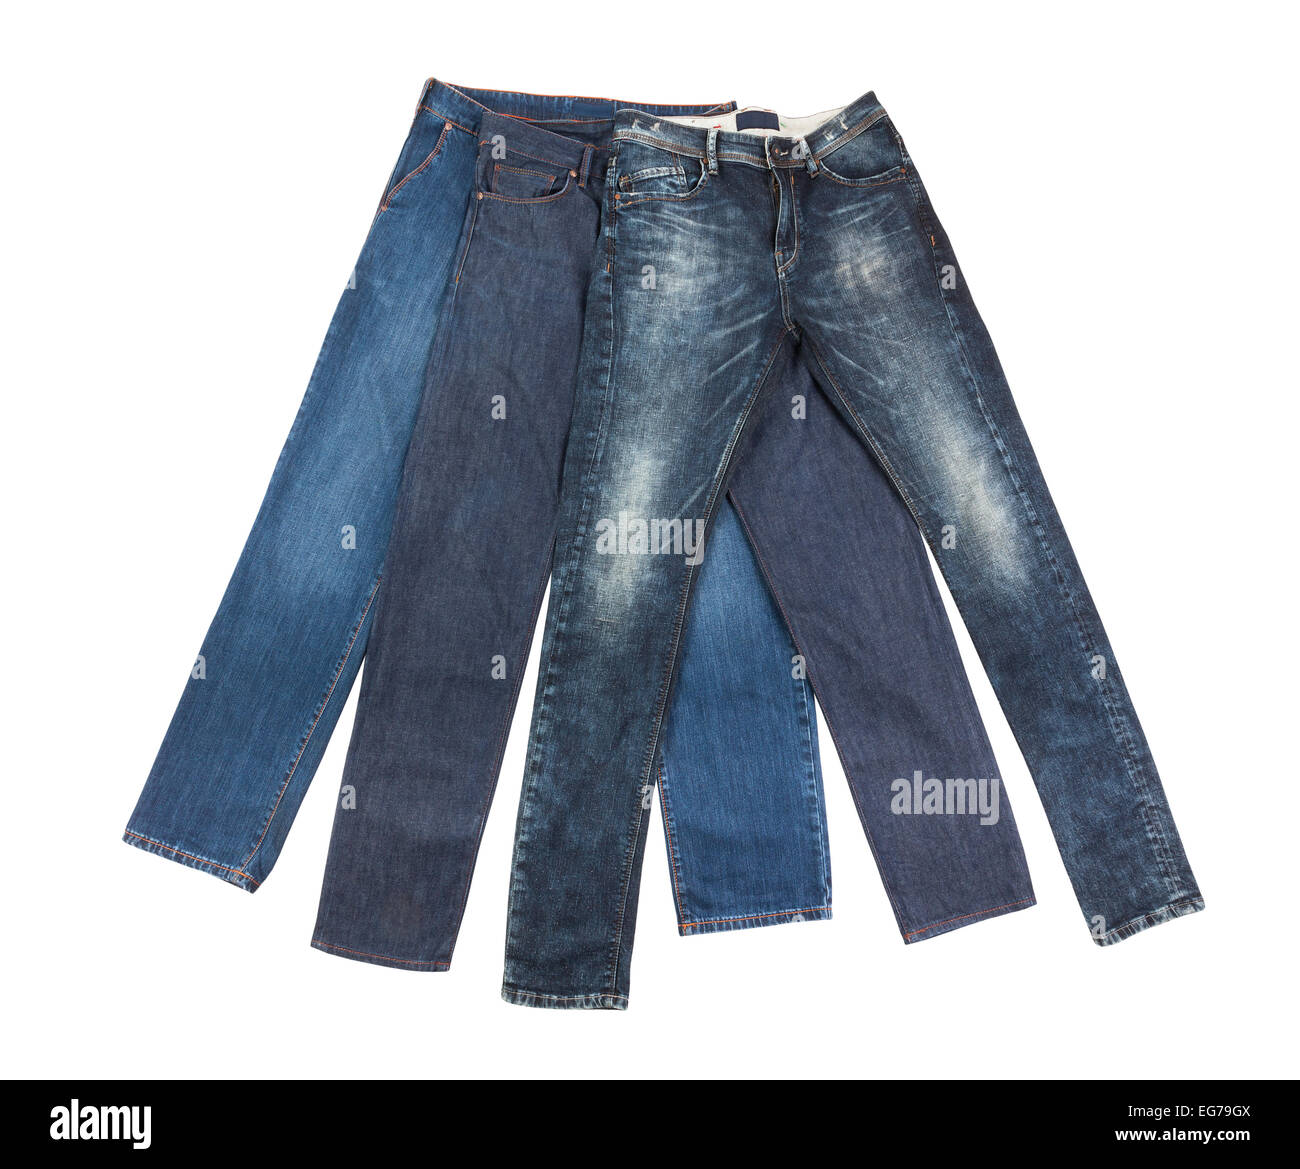 denim jeans isolated - Stock Image